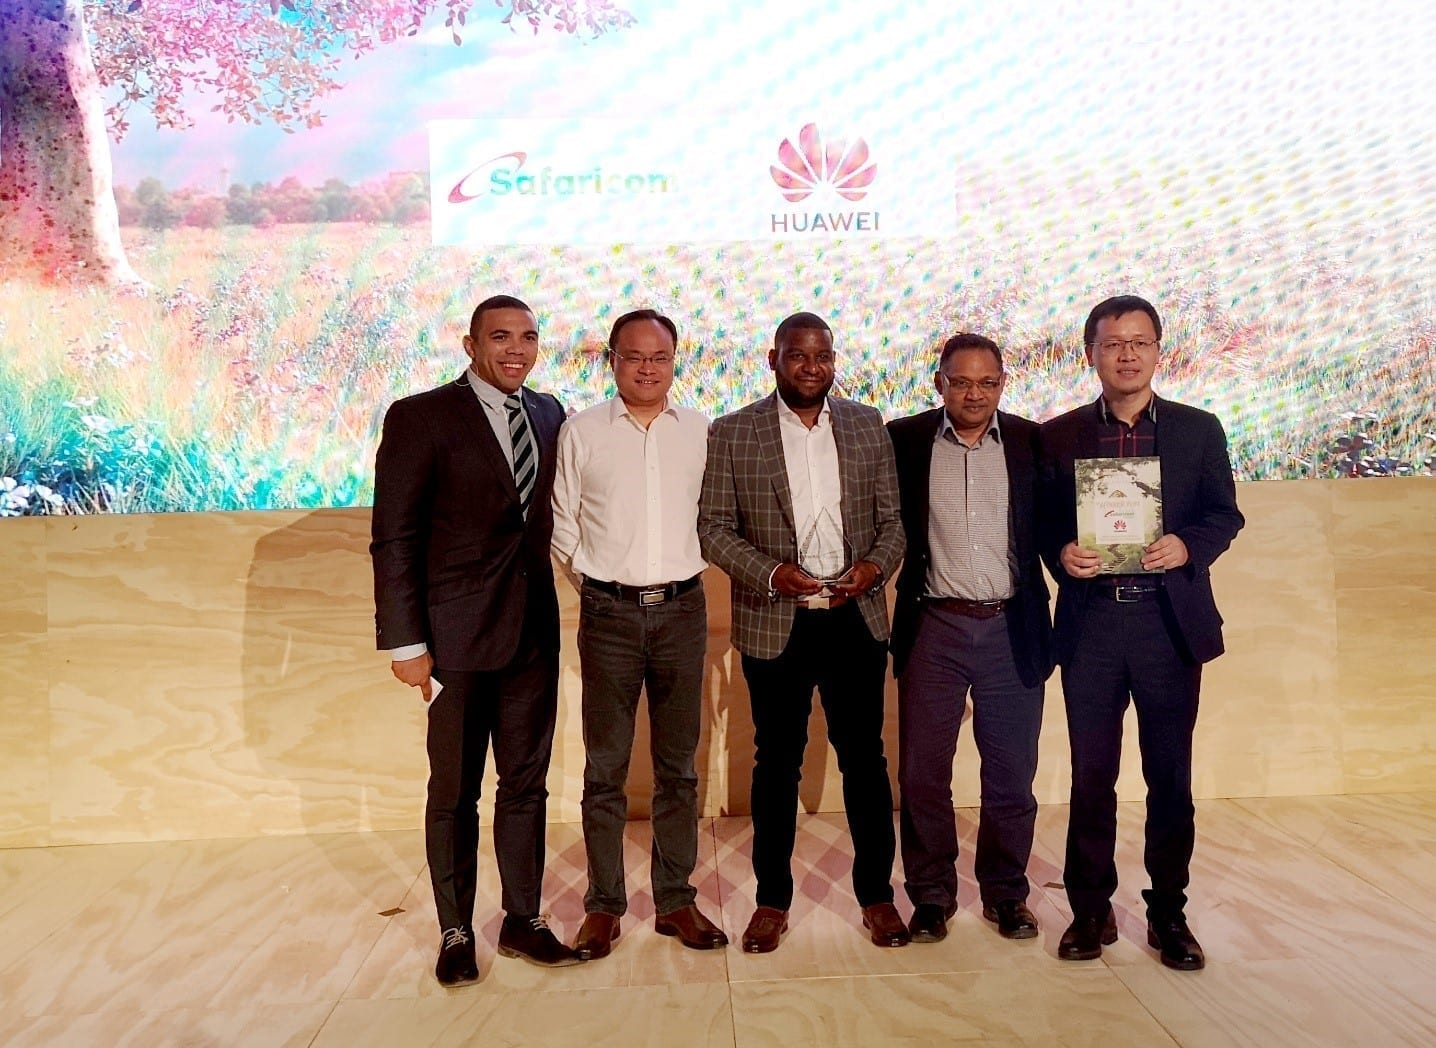 """Huawei receives """"Most Innovative Service"""" award at AfricaCom 2019 in Cape Town"""